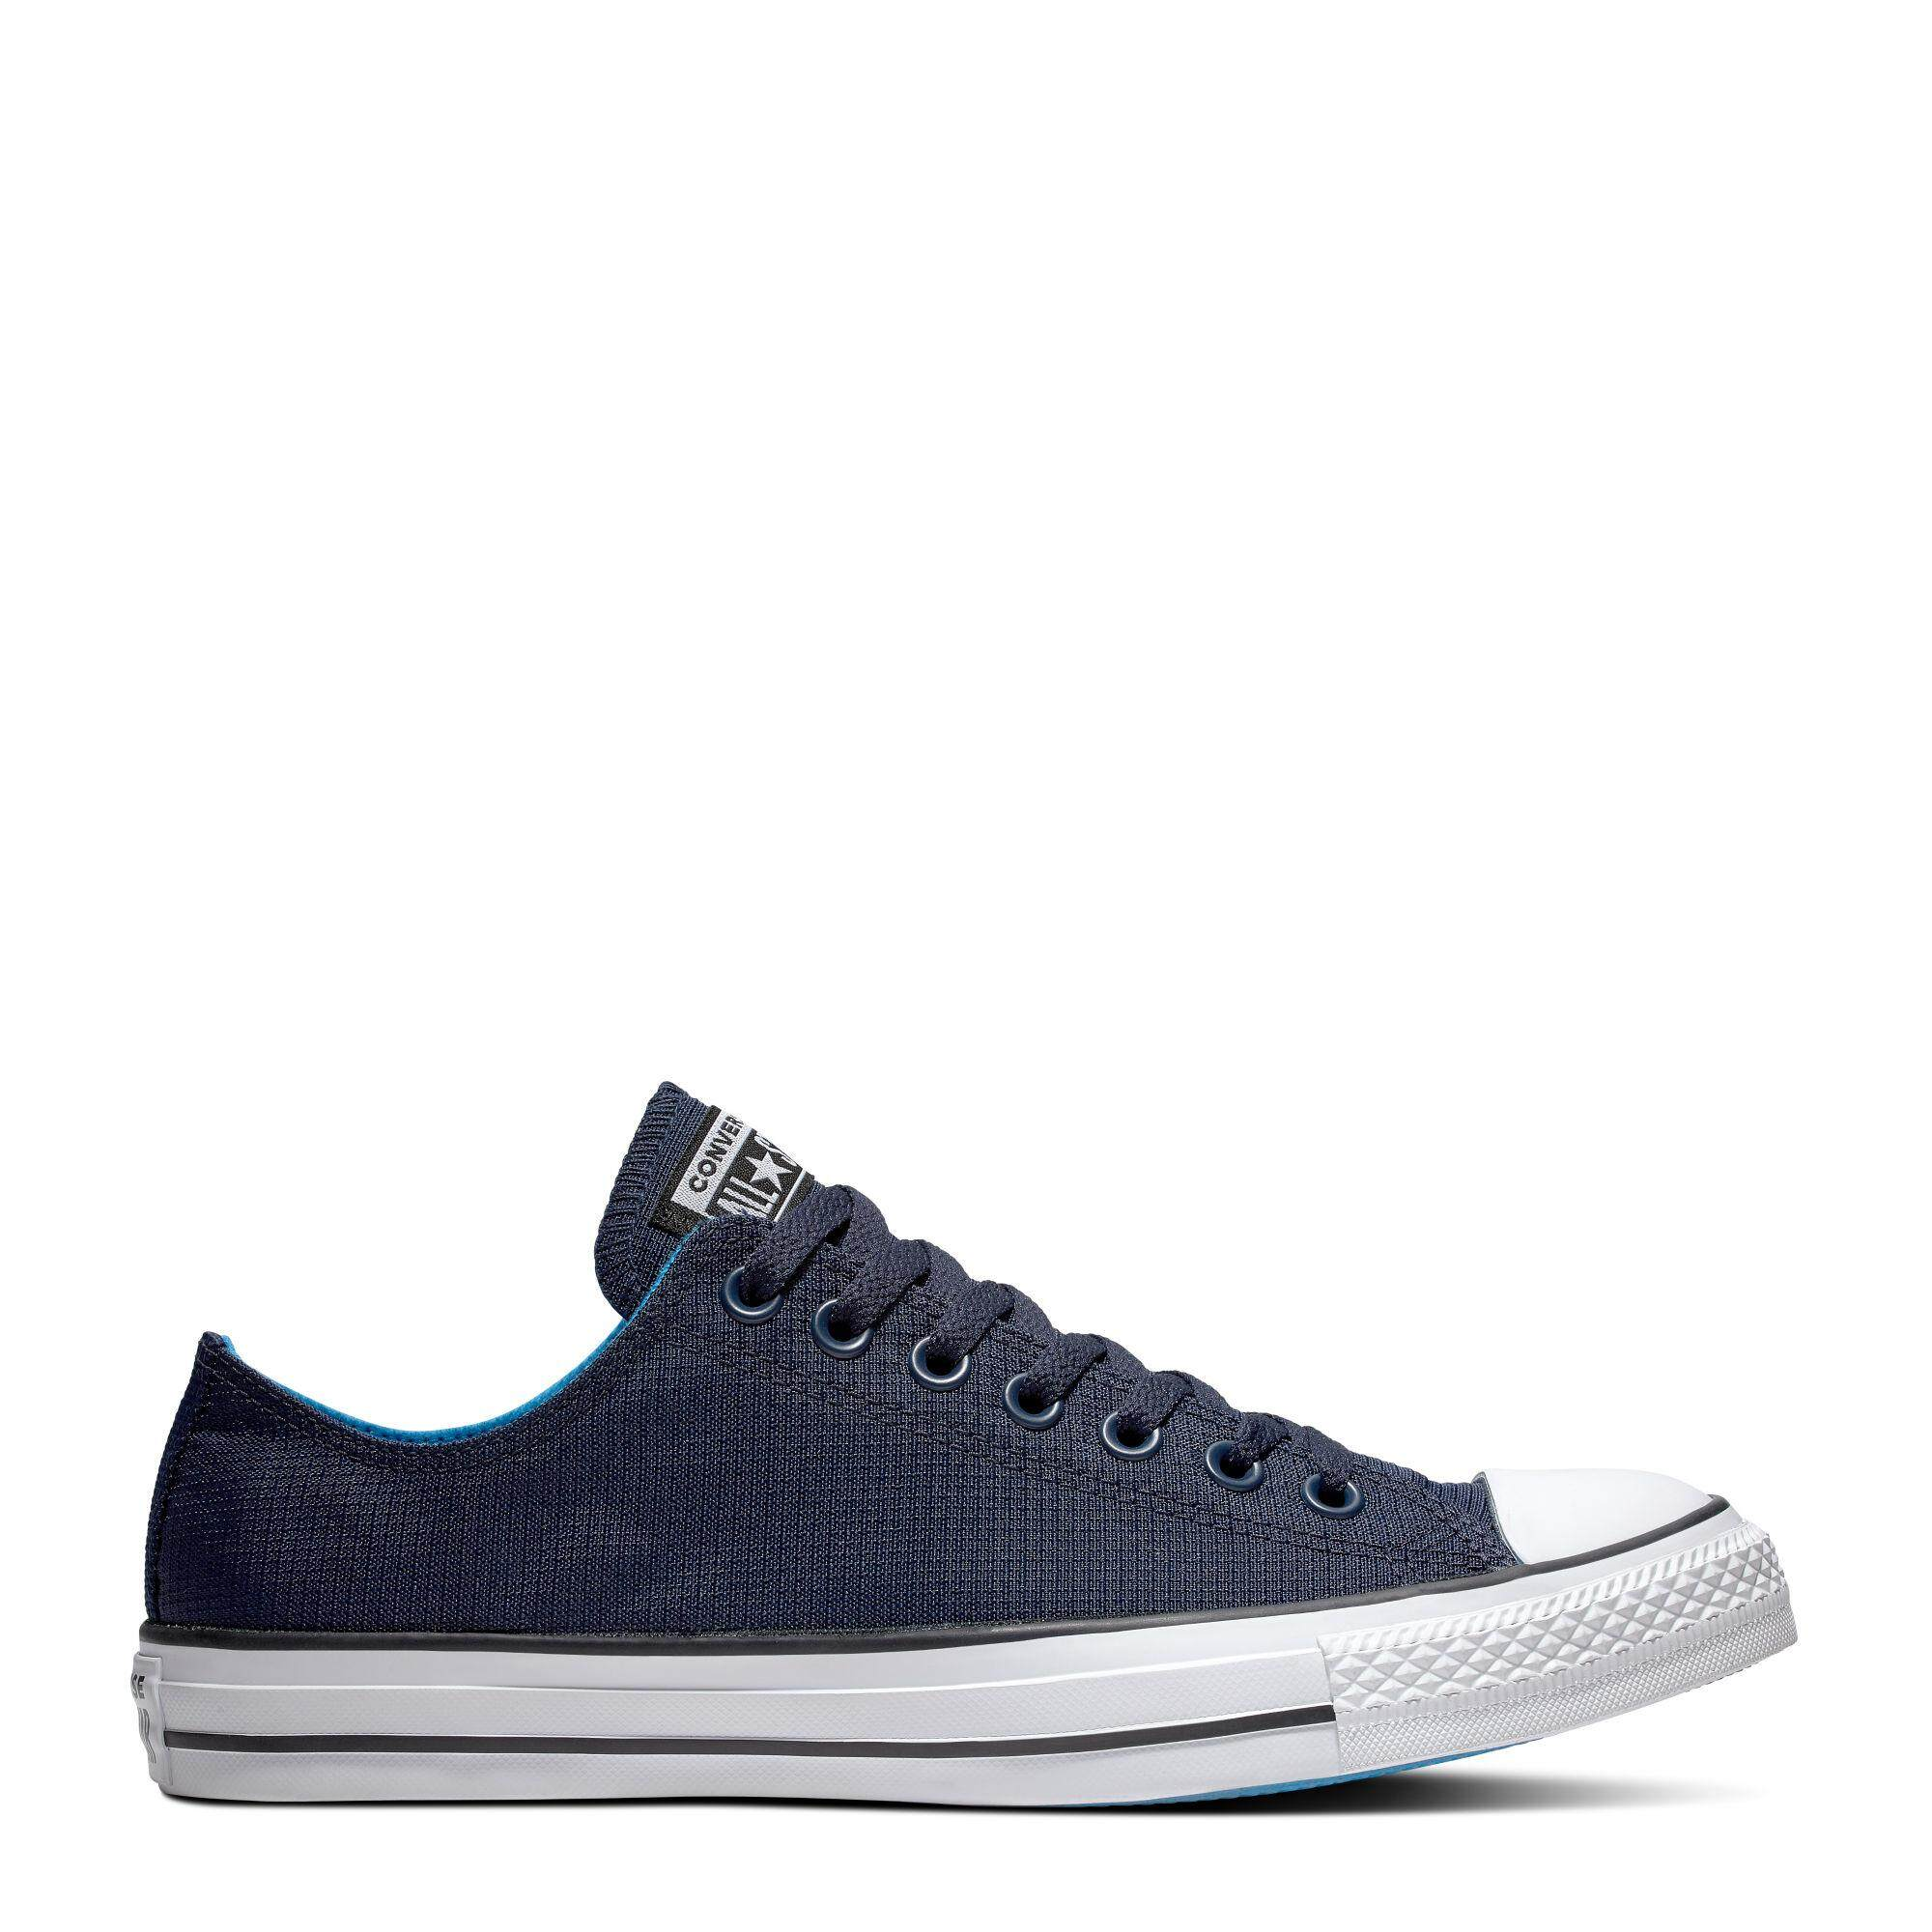 [XMAS] CONVERSE CHUCK TAYLOR ALL STAR LIGHTWEIGHT NYLON - OX - OBSIDIAN/BLUE HERO/WHITE - 162411C